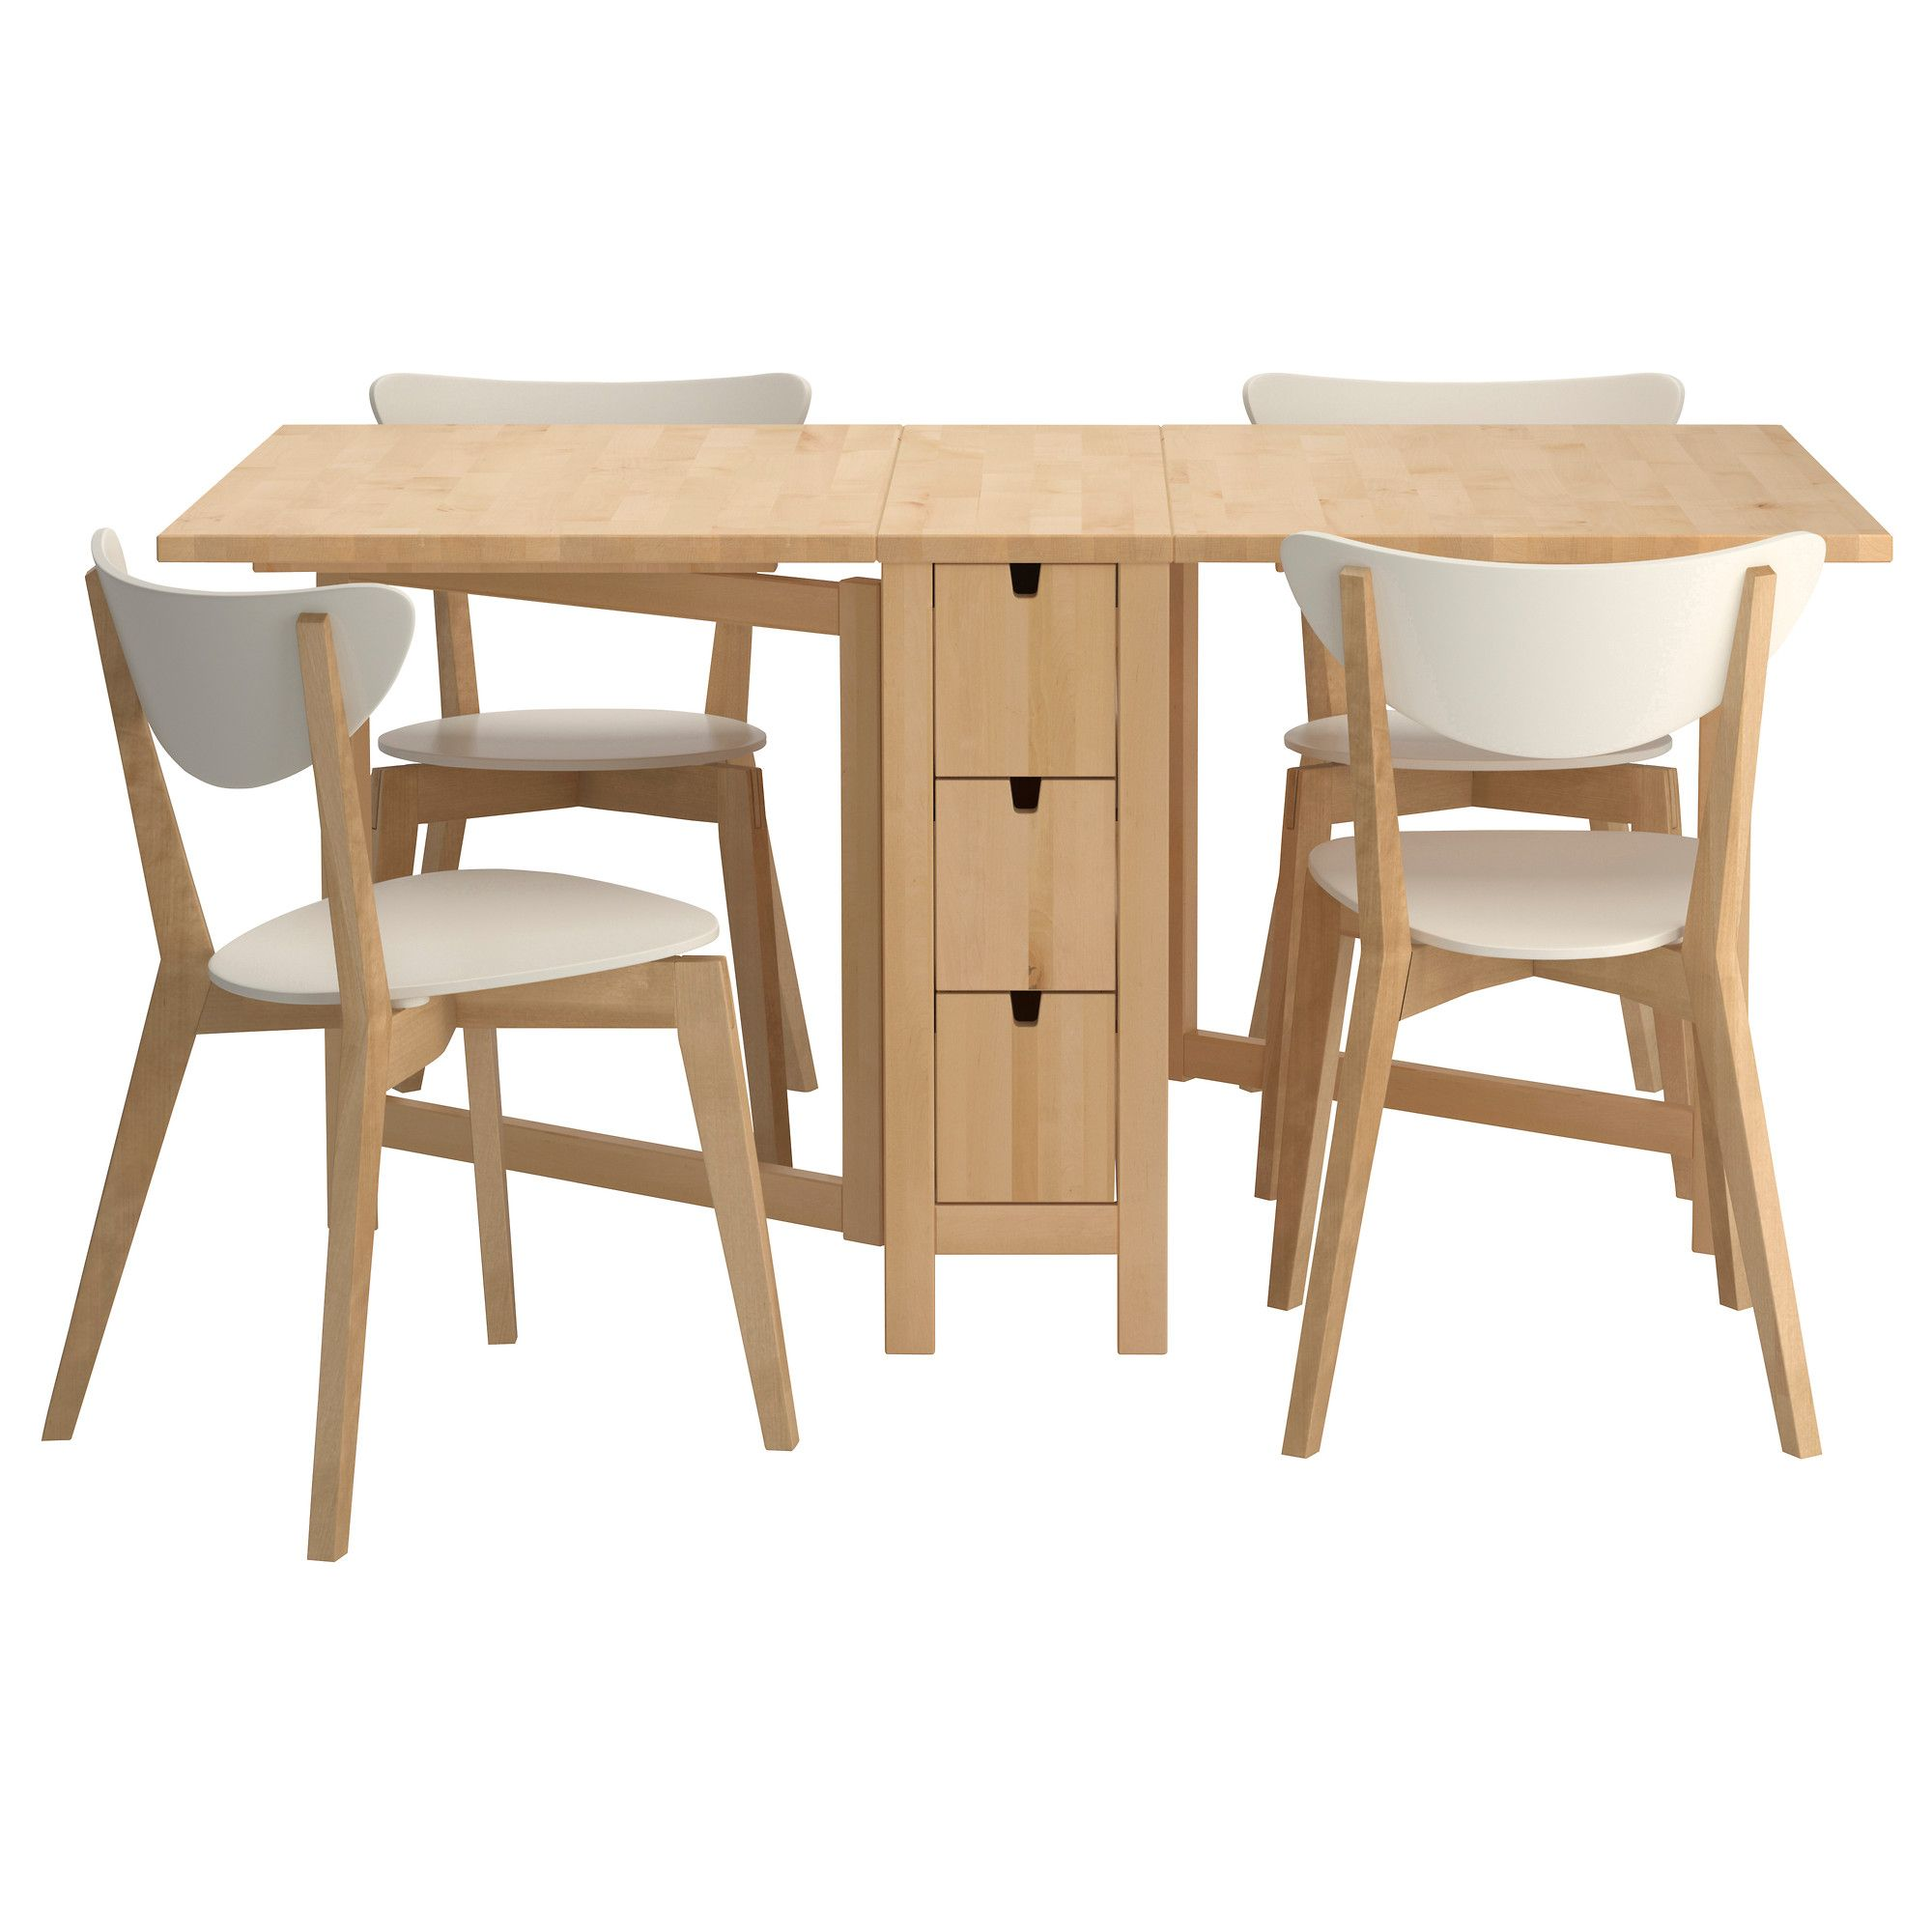 Norden nordmyra table and 4 chairs ikea for the love for The best dining tables